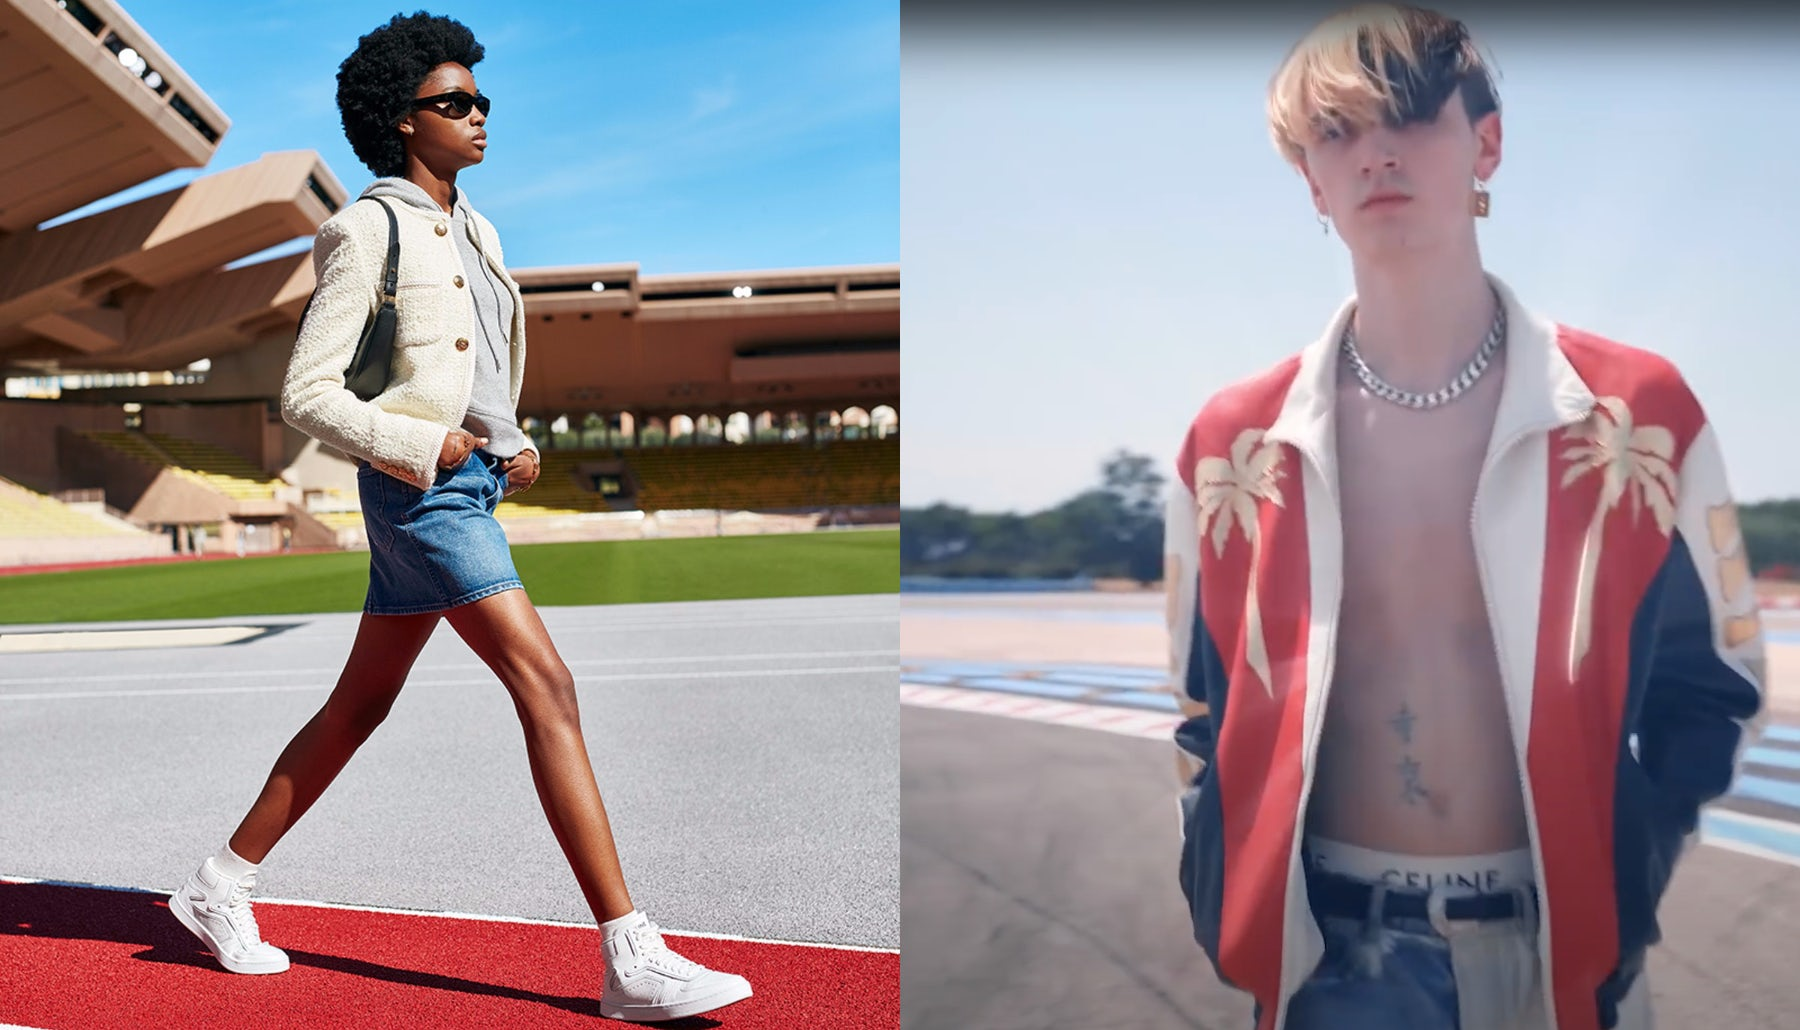 """Celine's """"Portrait of a Generation"""" (left) and """"Dancing Kid"""" (video still, right) collections paid tribute to TikTok-fuelled Gen-Z fashion. Celine."""